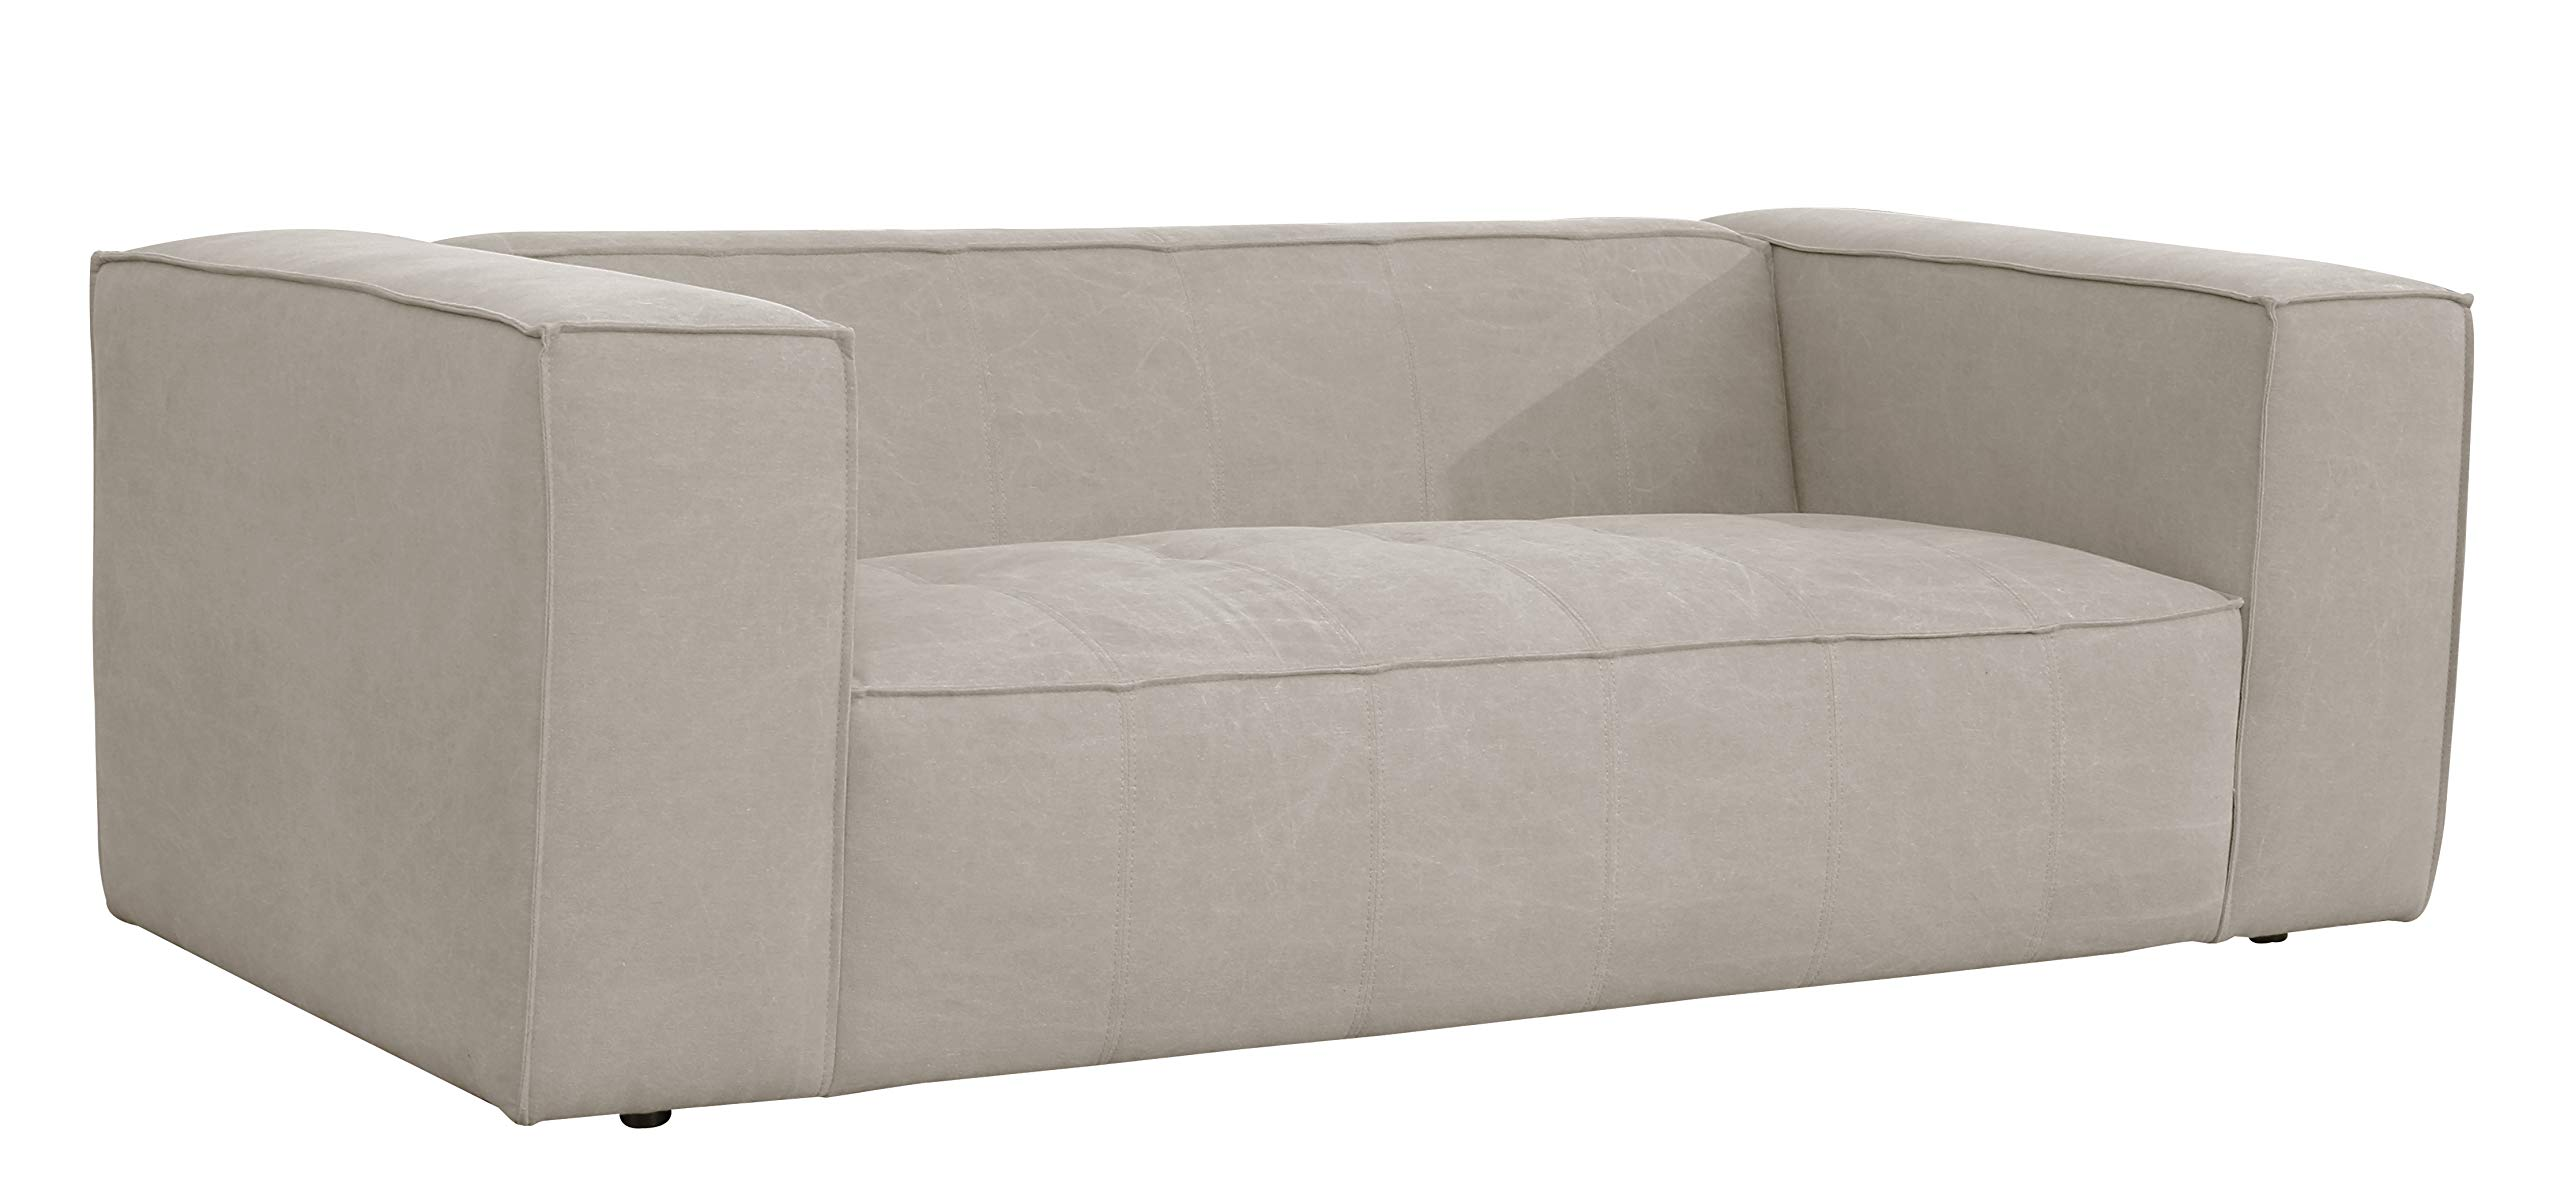 Rivet Thomas Modern 81.5'' Sofa, Fabric, Gray by Rivet